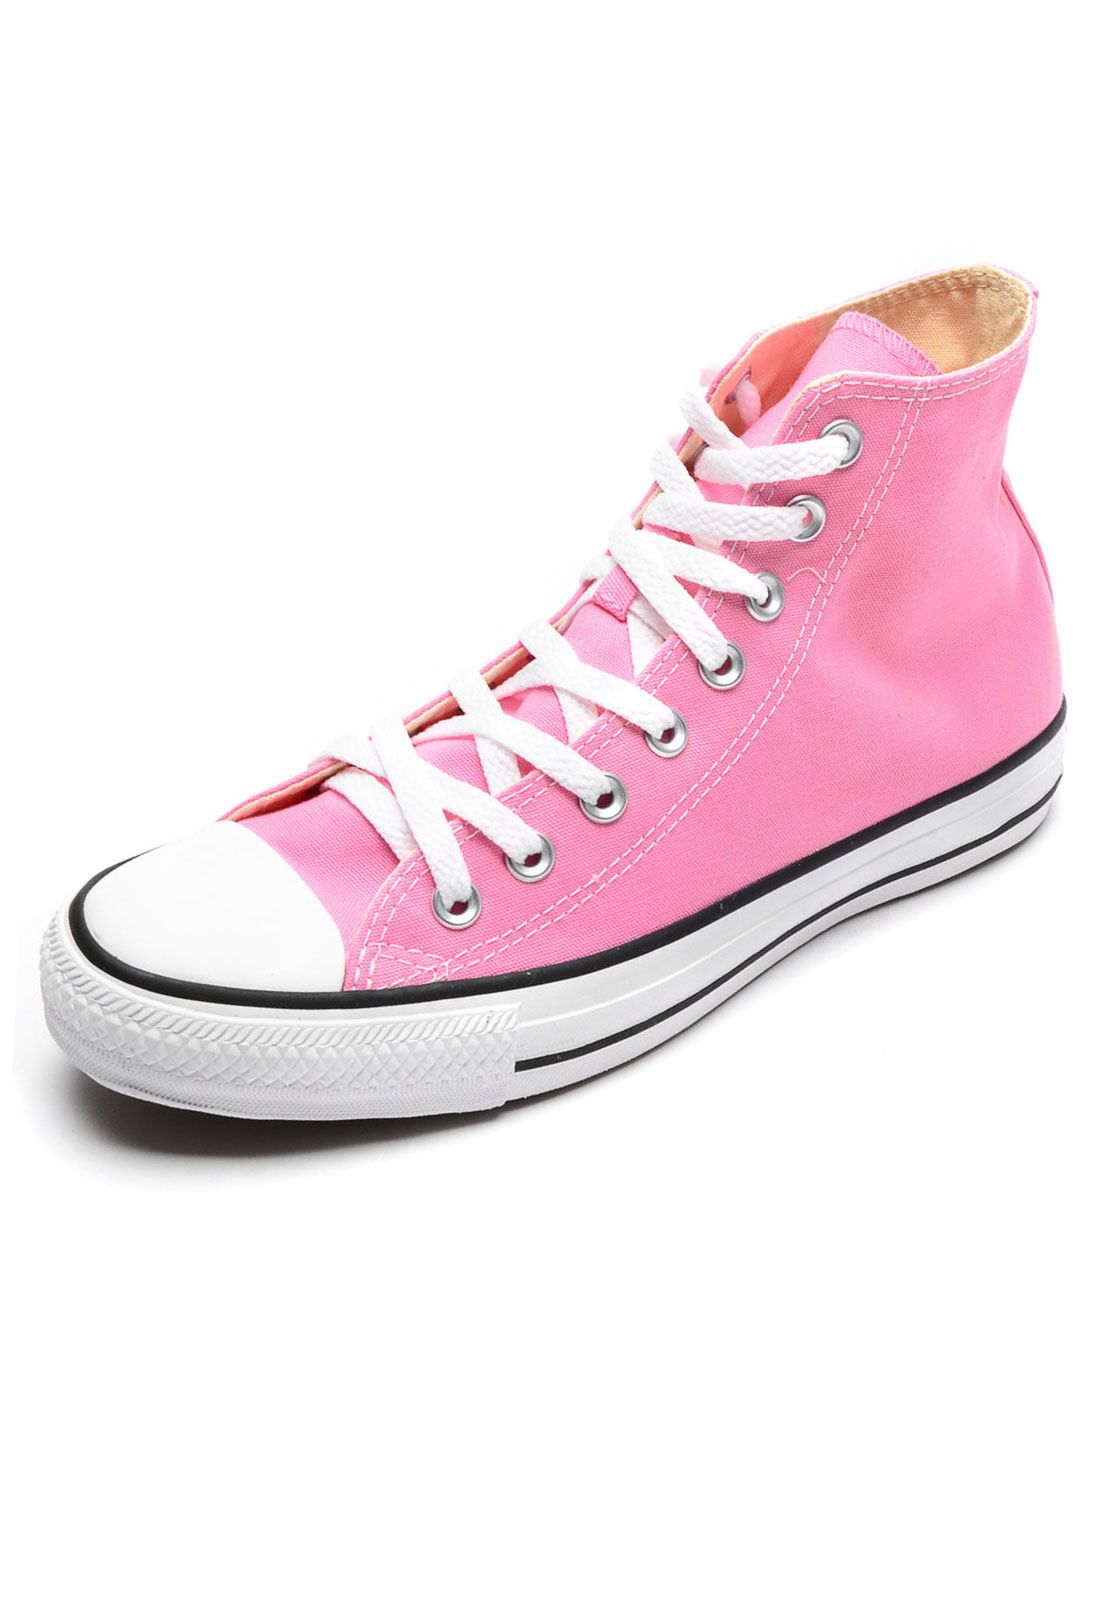 Tênis Converse Chuck Taylor All Star Seasonal Colors HI Rosa